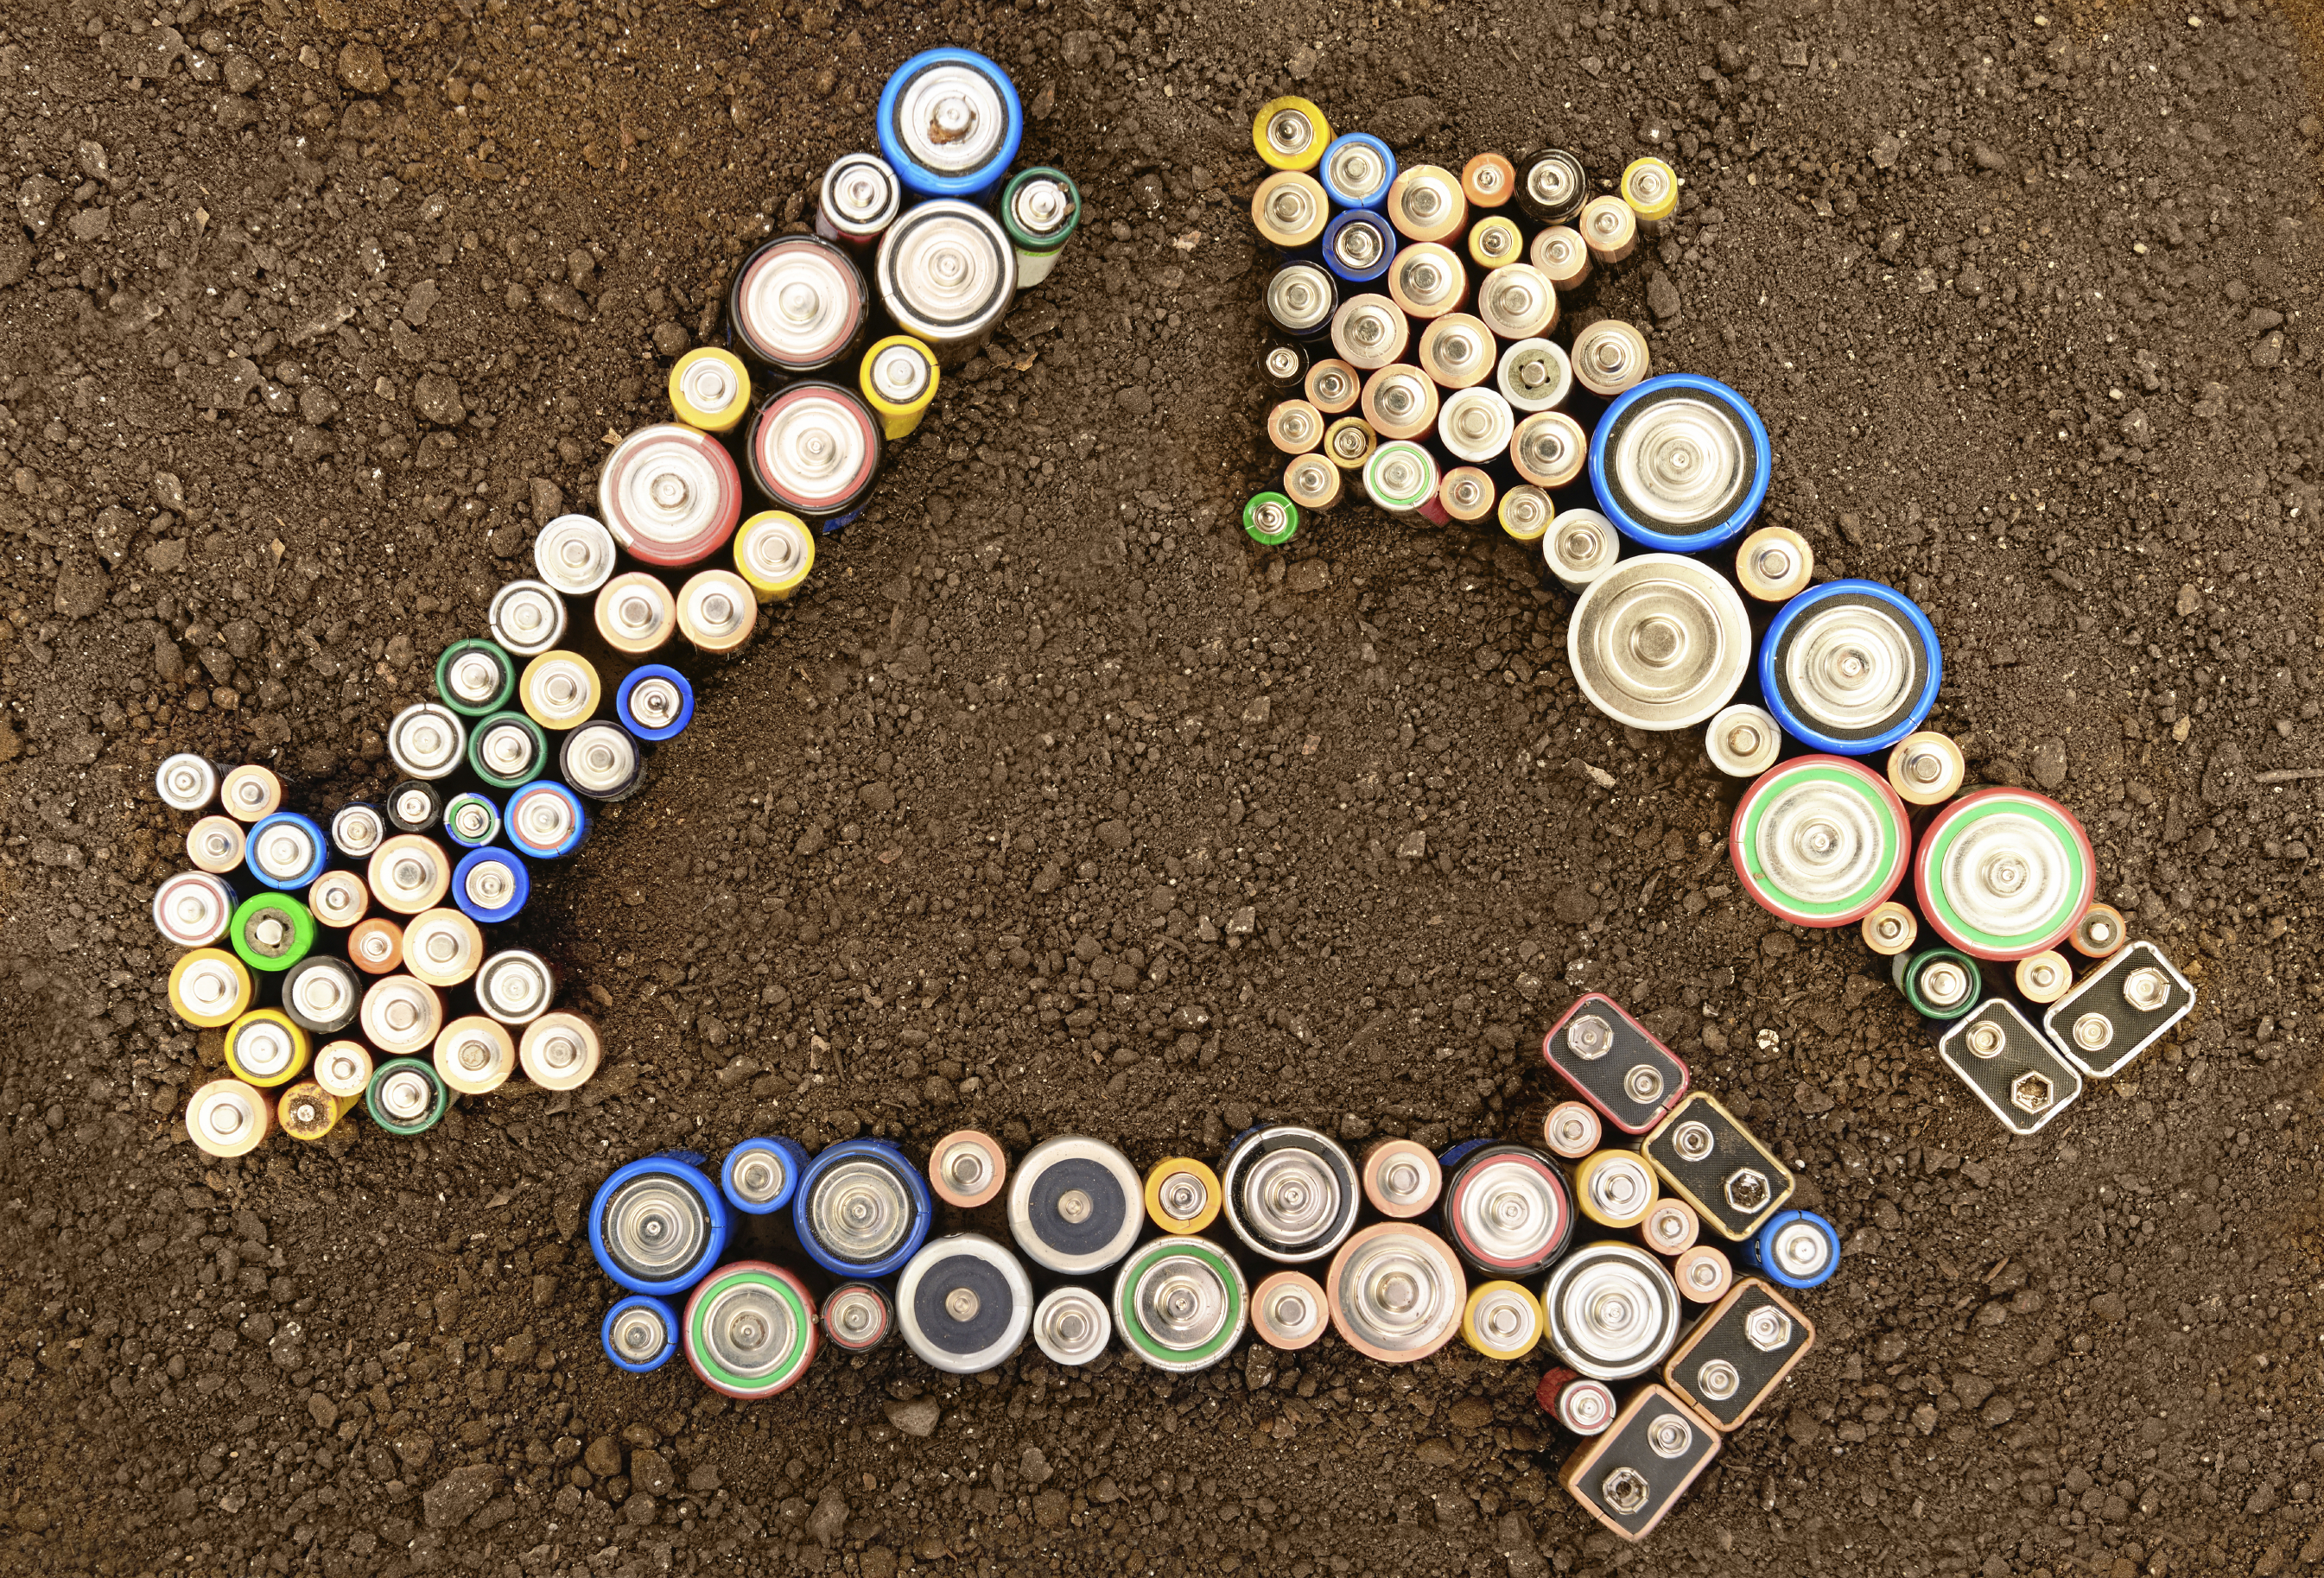 14 Million Pounds of Used Batteries in 2016